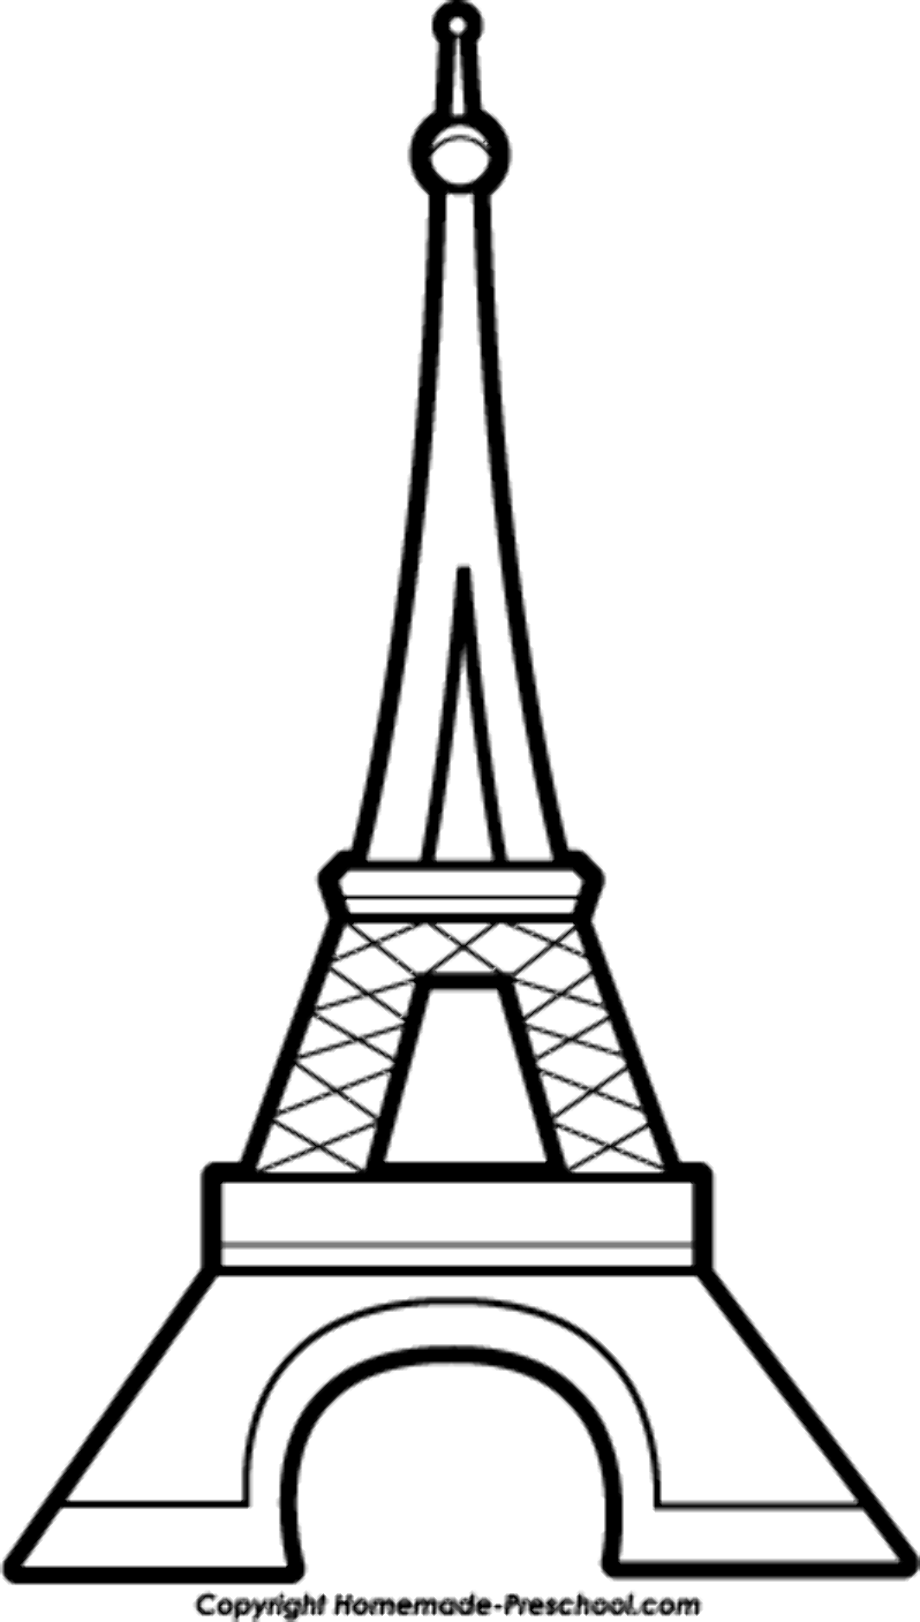 how to draw the eiffel tower cartoon 42 so beautiful eiffel tower drawing and sketches to try tower the draw to eiffel cartoon how